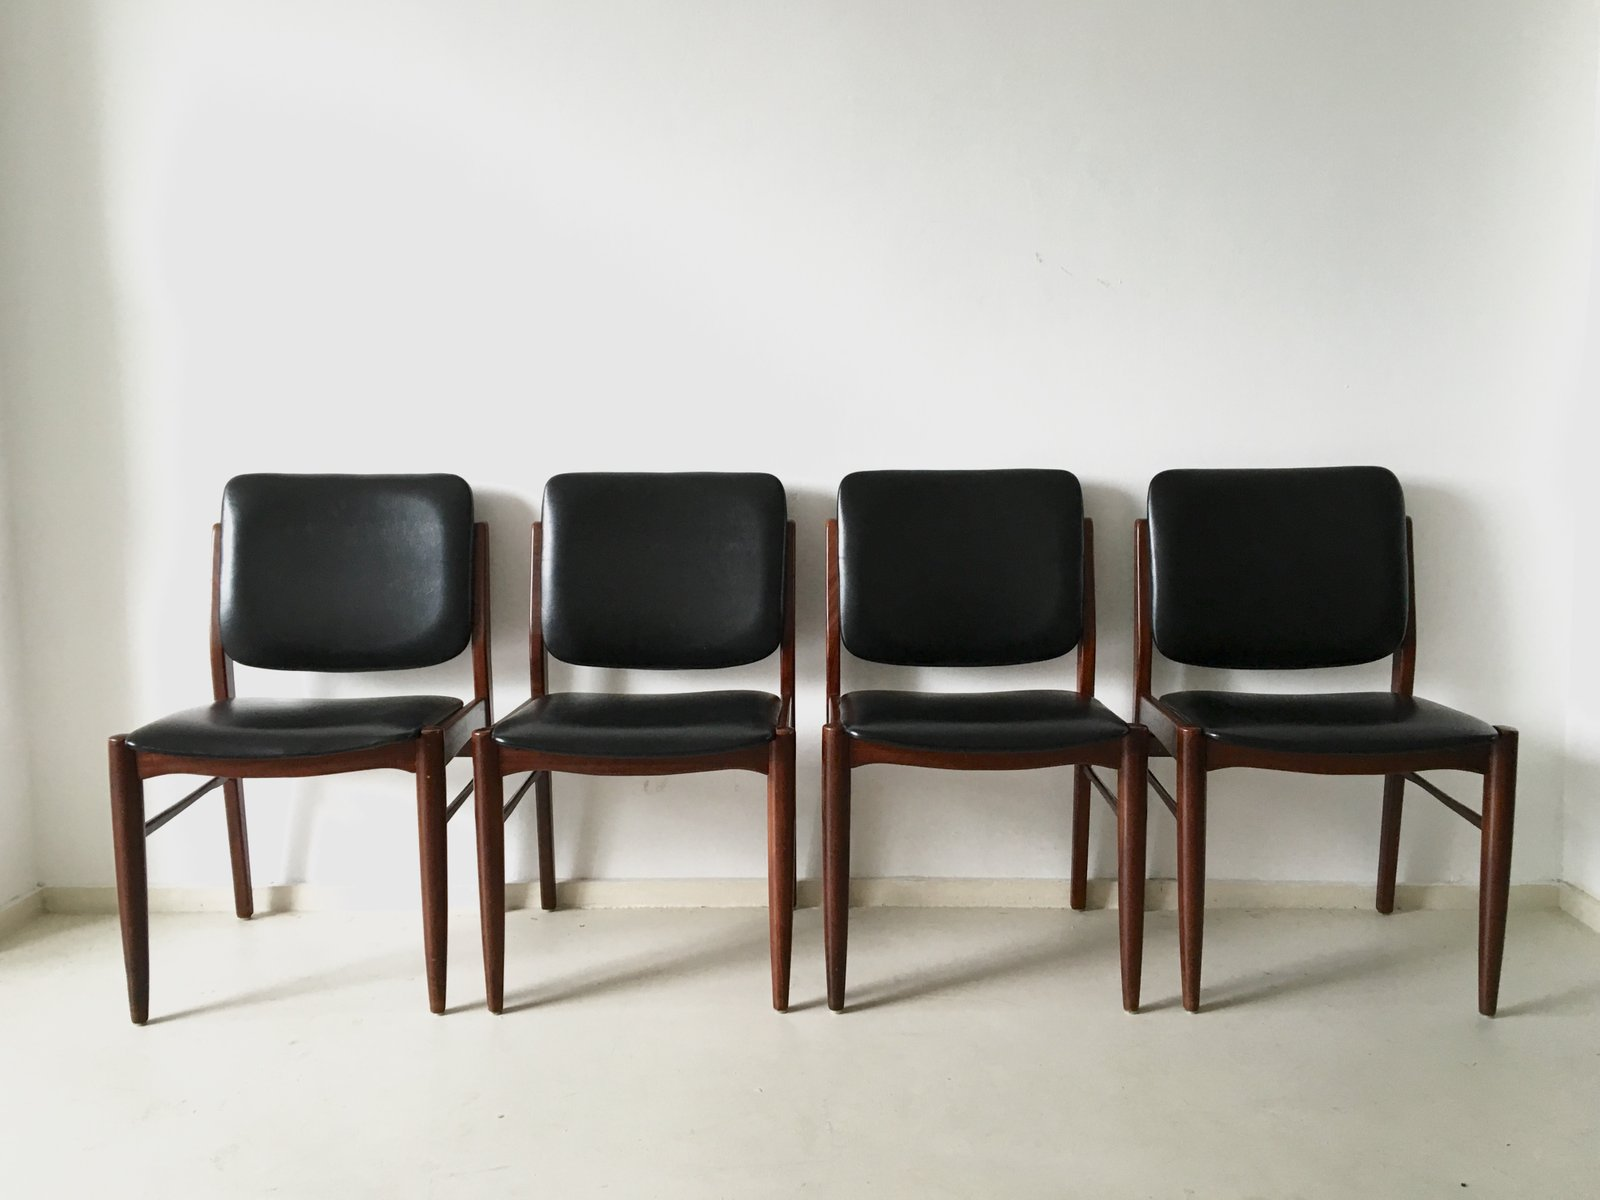 Vintage Danish Dining Chairs 1960s Set Of 4